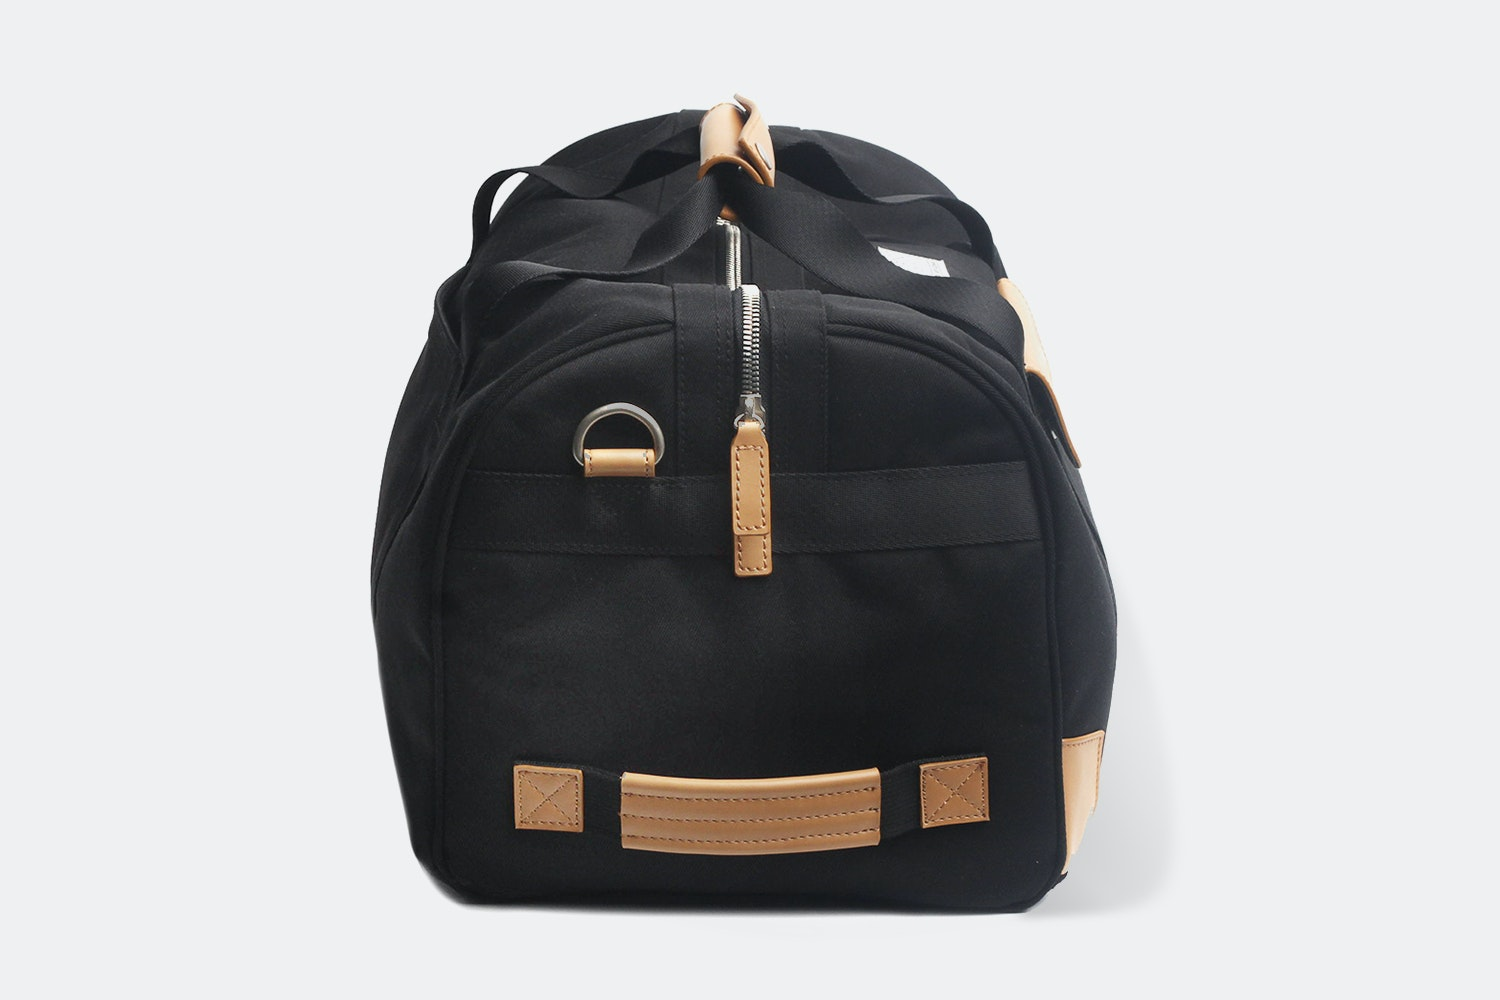 Venque Duffle Pack 1.0